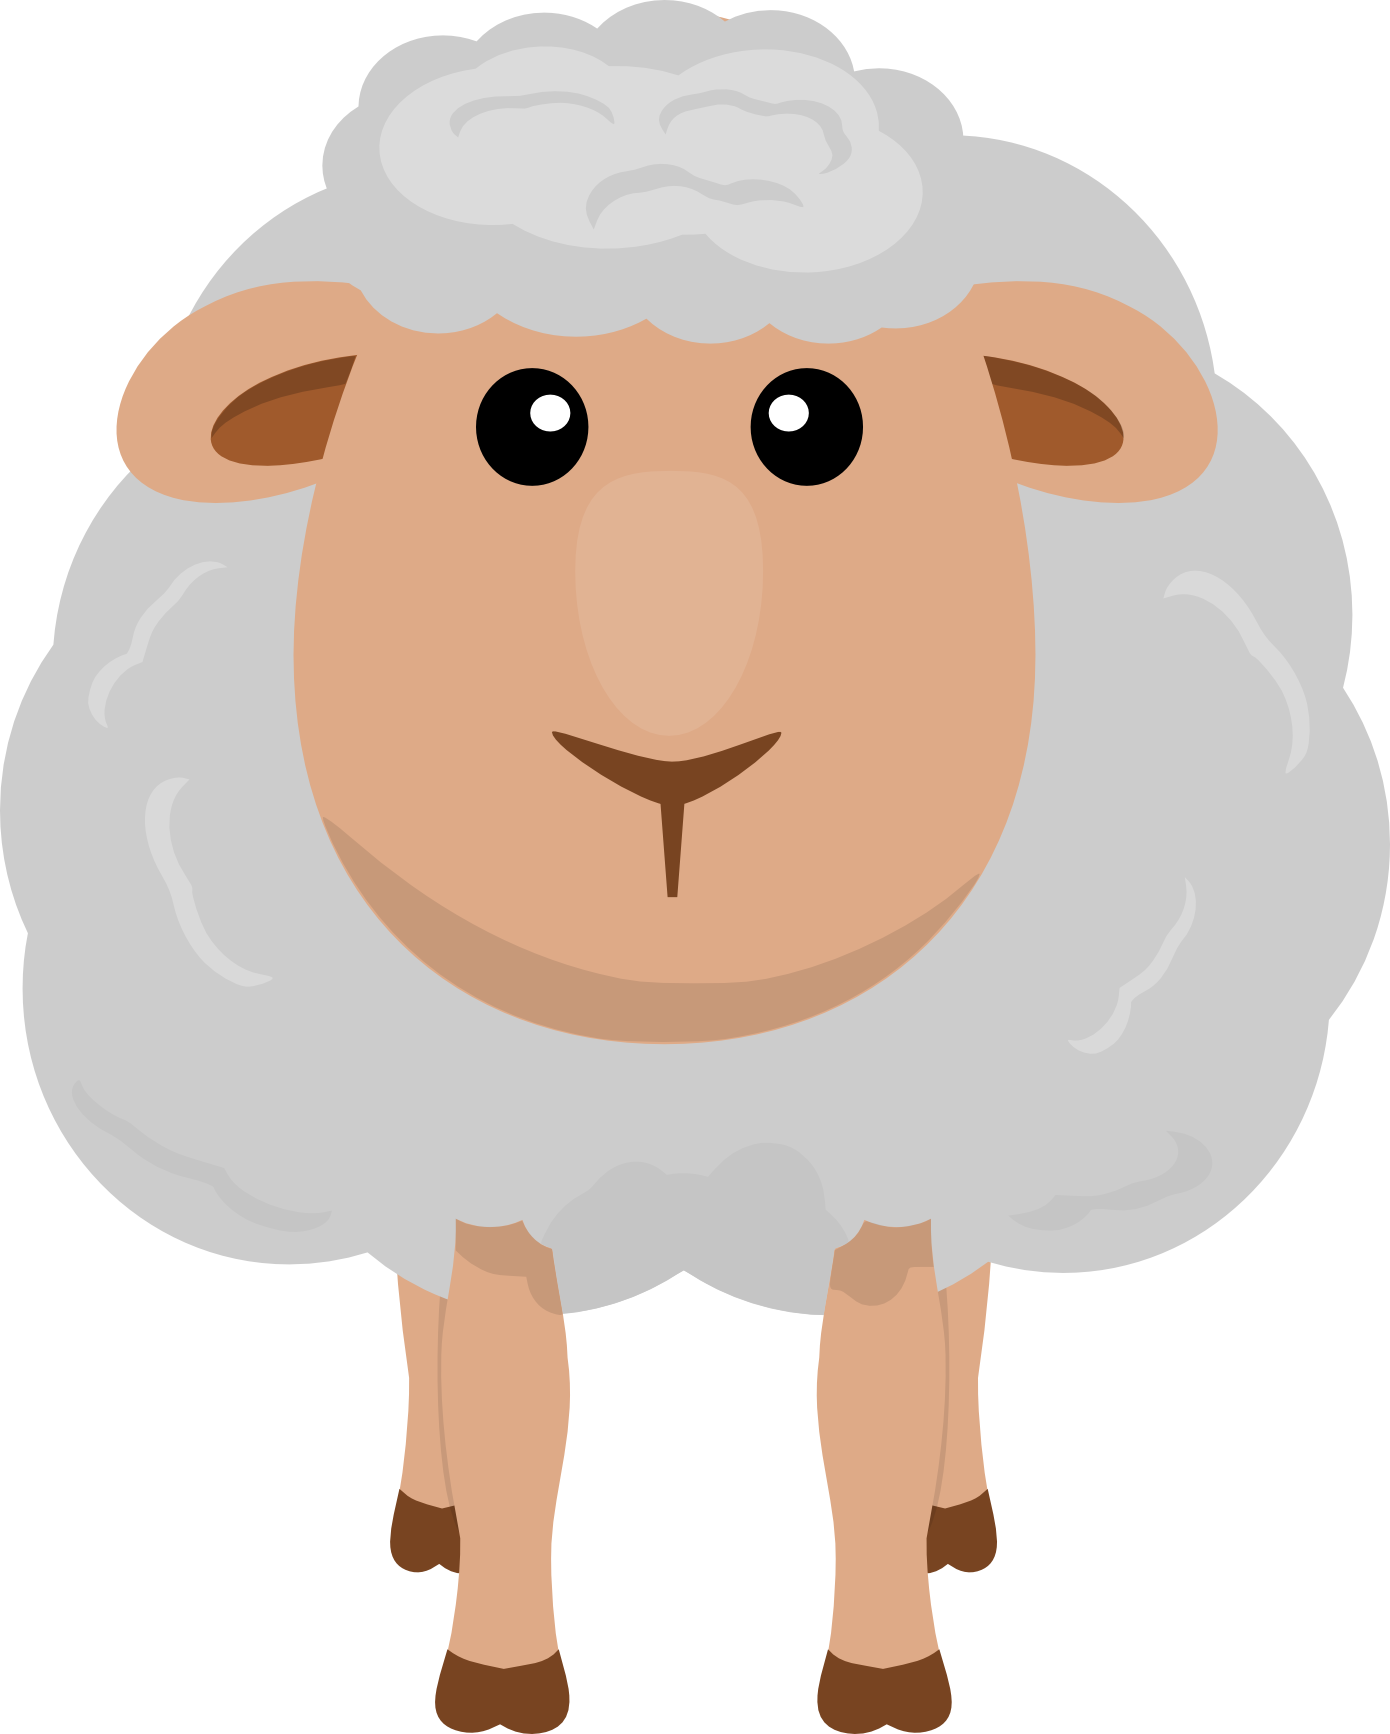 Turkey as a sheep clipart png black and white Cute Animated Sheep. Stunning Funny Interesting Gulu Sheep Wechat ... png black and white